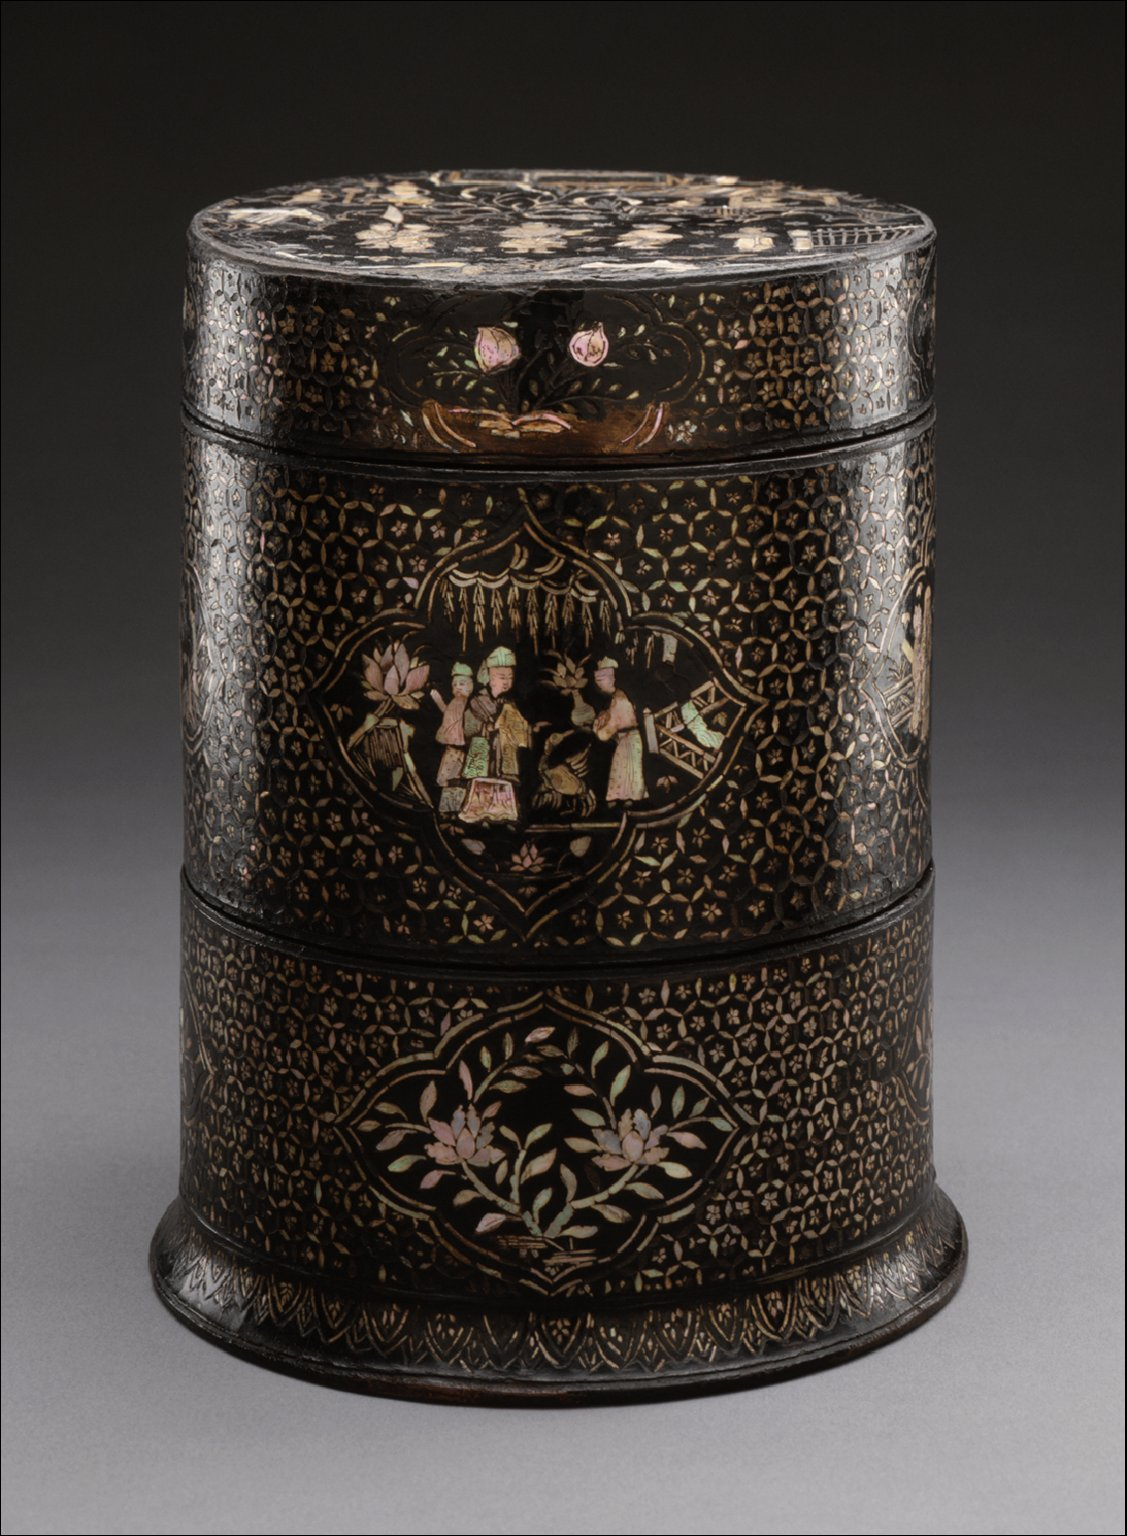 Circular Cosmetic Box with Figures in Landscape